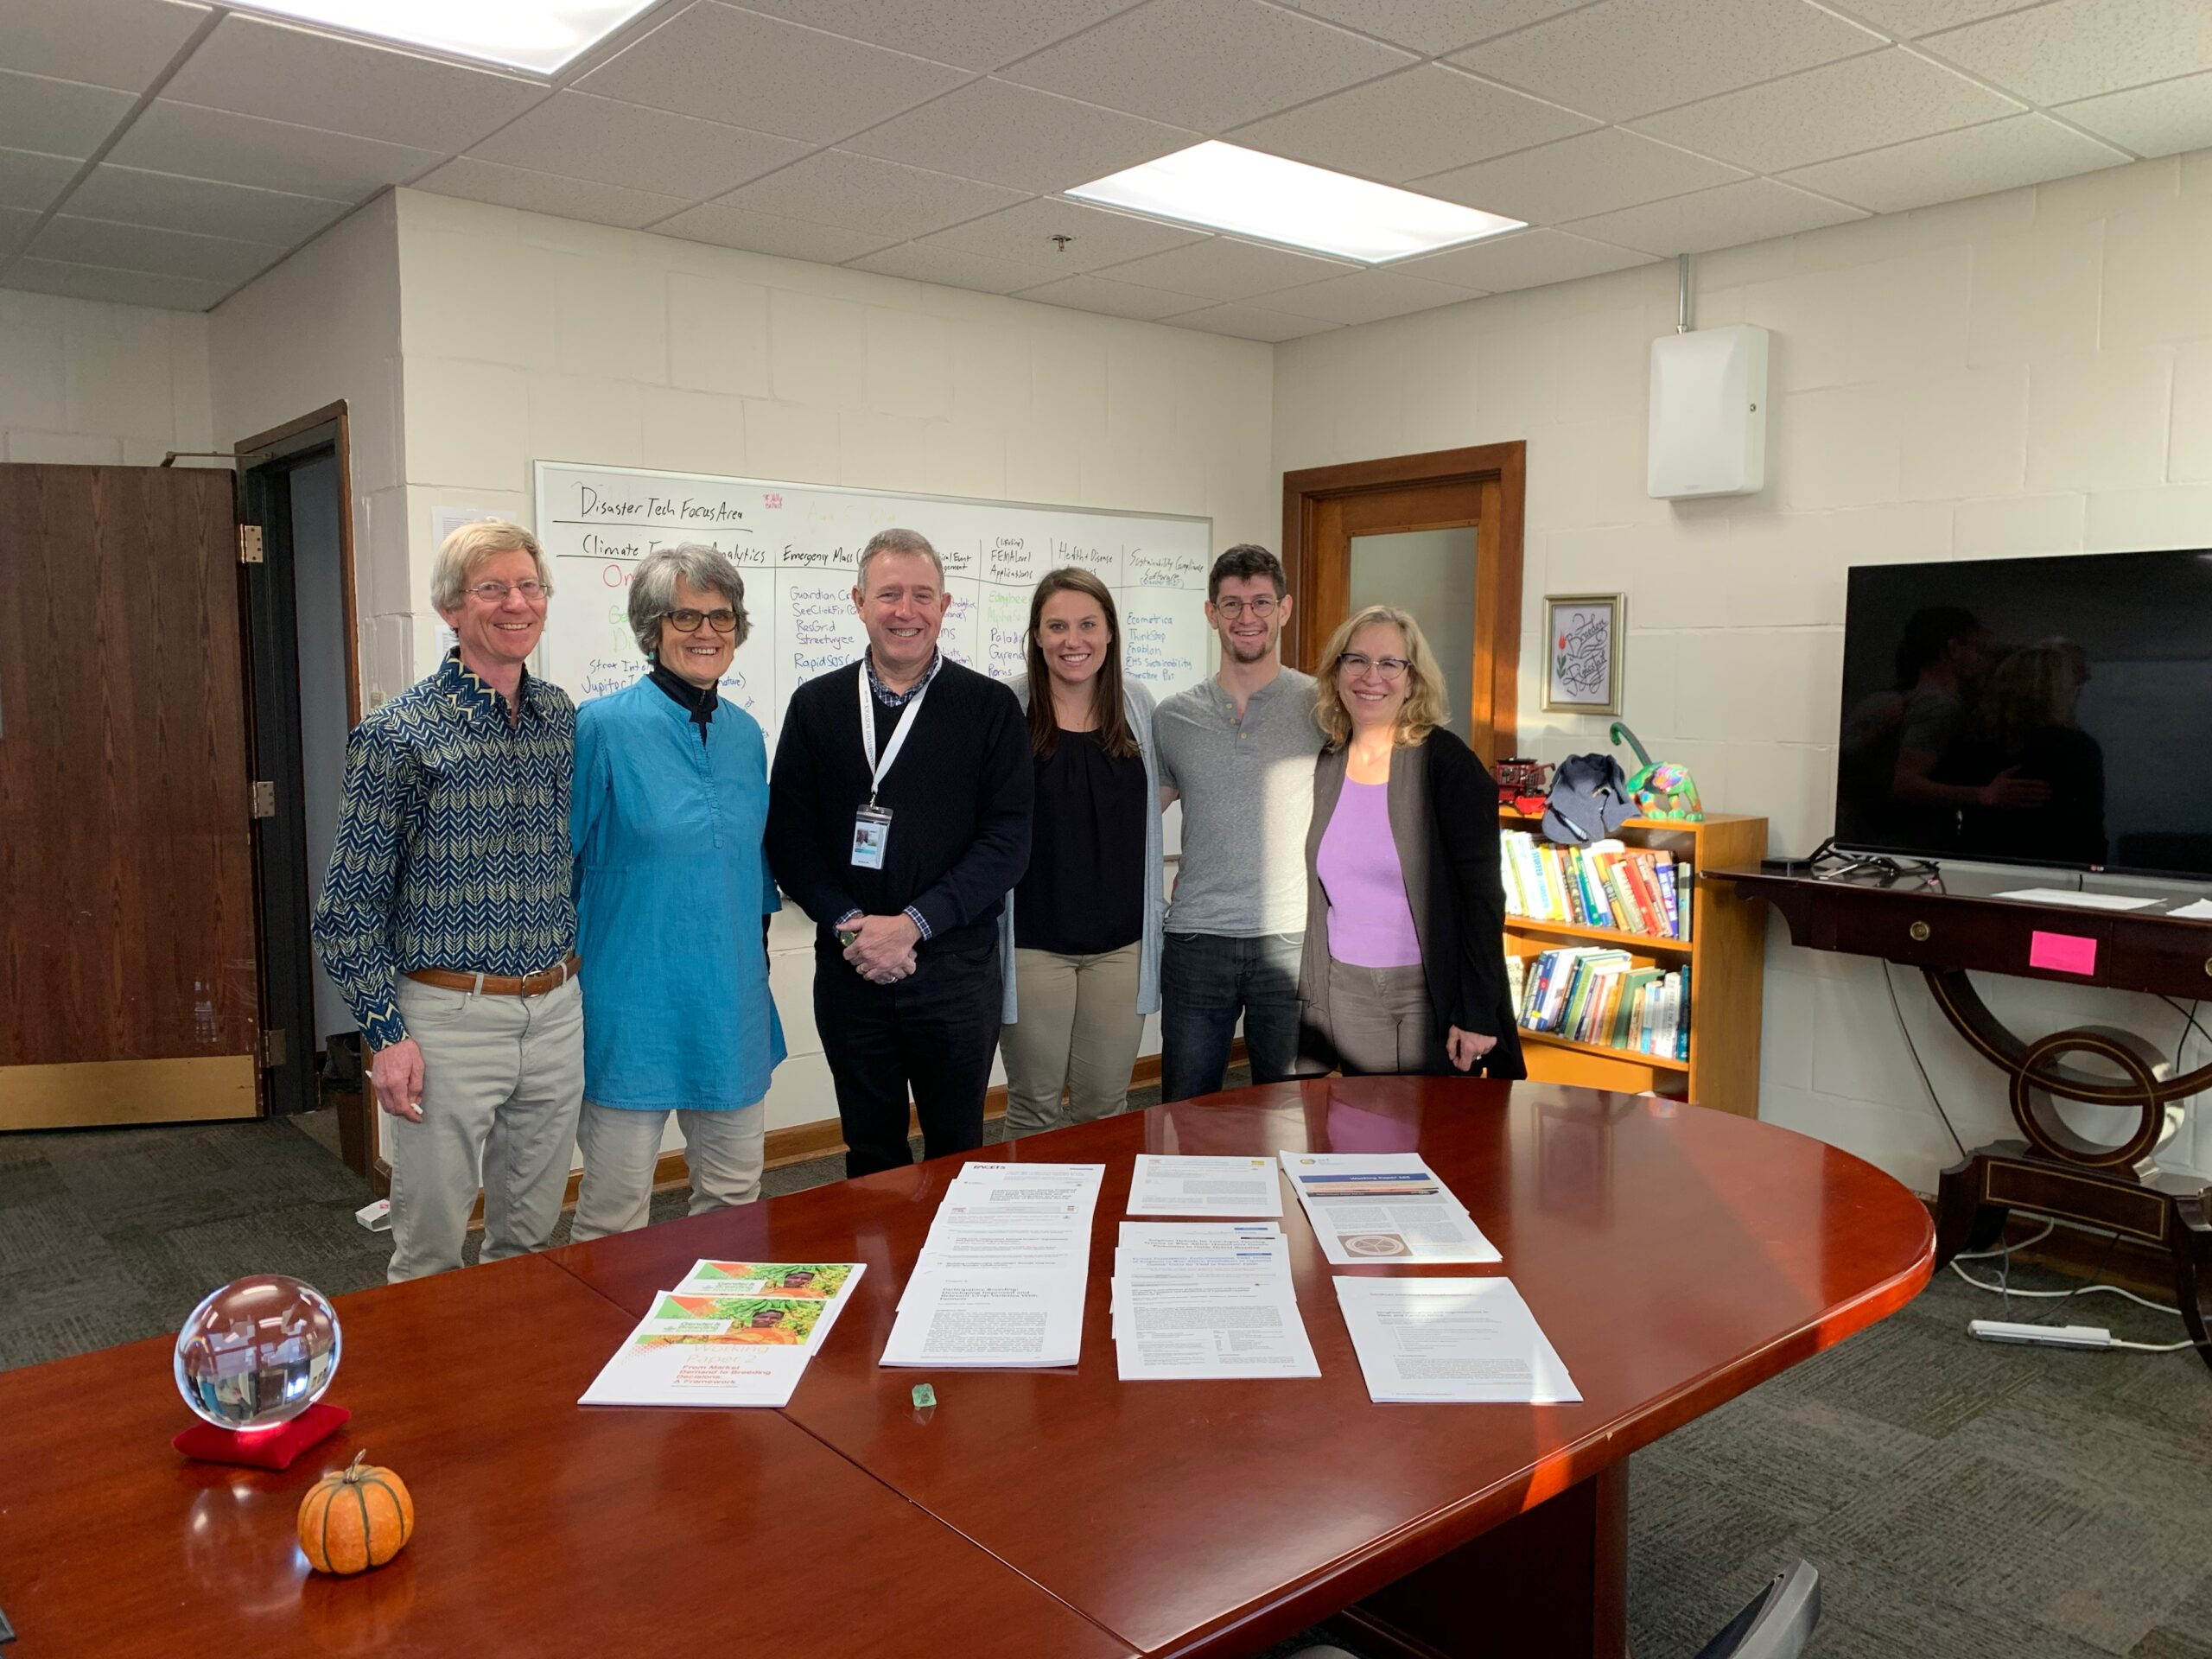 Fred and Eva visit Jahn Research Group, Molly Jahn